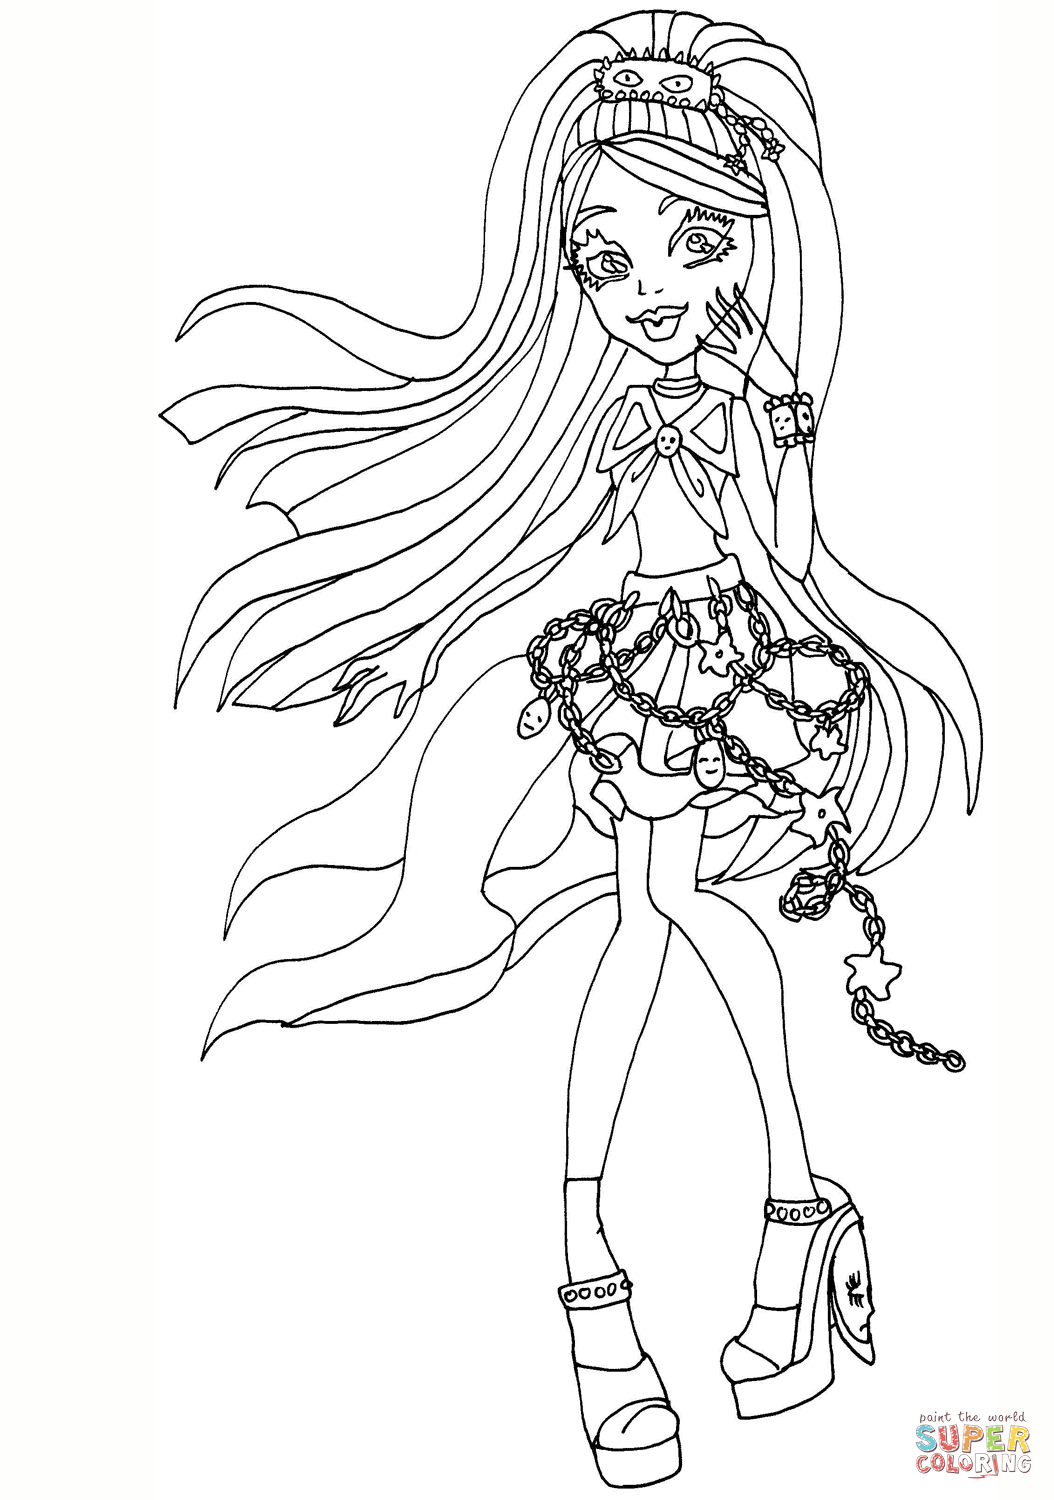 Ausmalbilder Von Monster High : Kiyomi Haunterly Coloring Page Png 1054 1500 Monster High